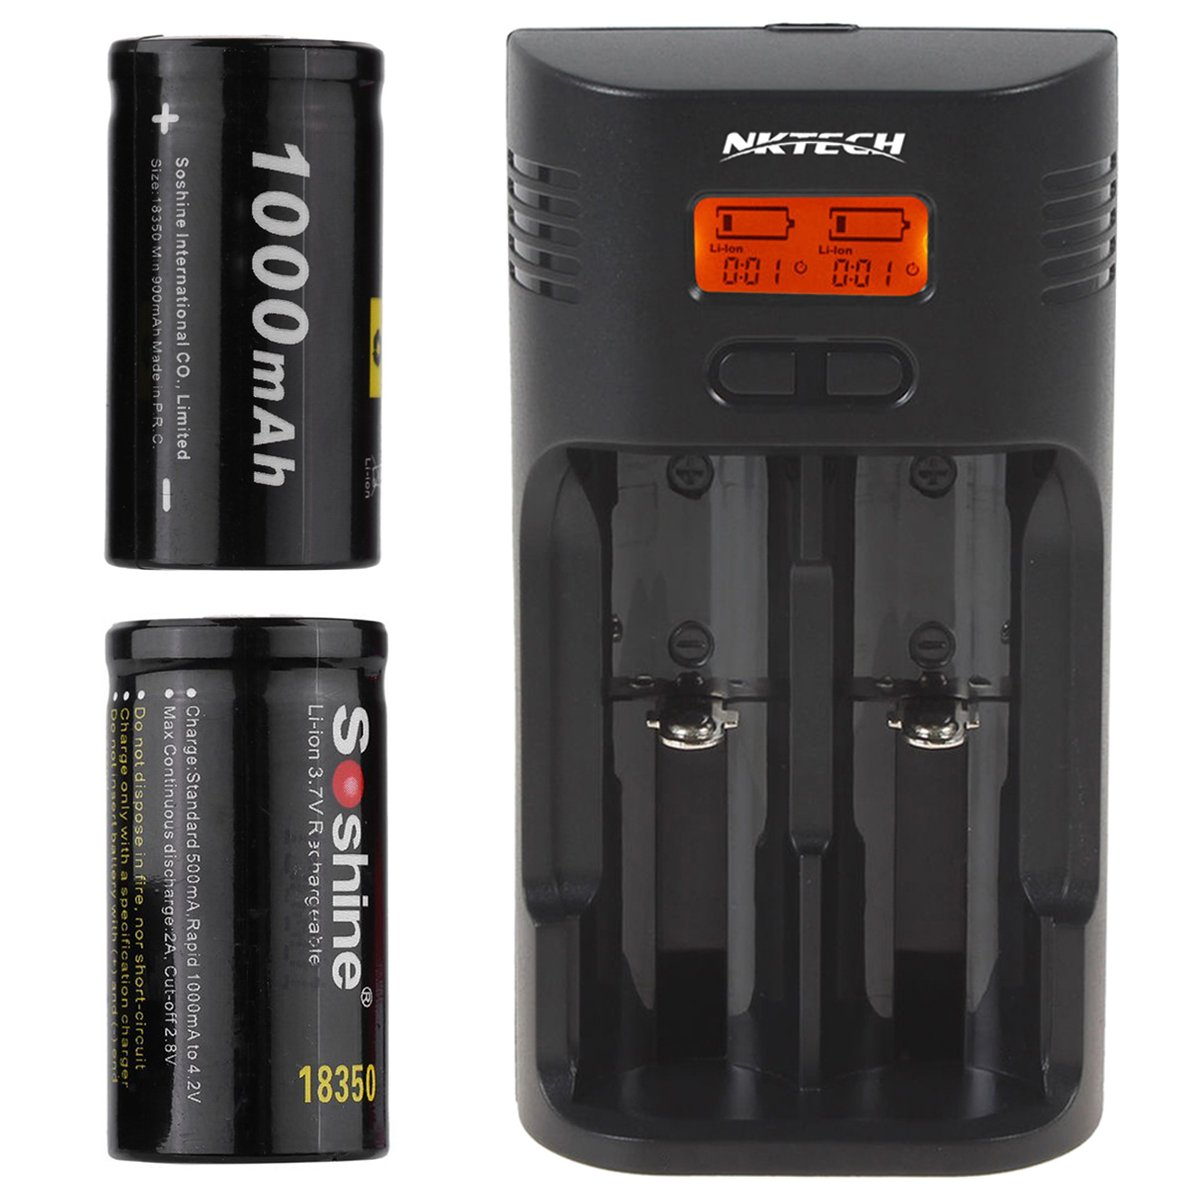 Adaptor Cell Charger Baterai 18650 18350 1 Slot Multi Type Eser 2in1 Ampamp Powerbank Slotcon Elf Nktech Black Sc T2 Lcd Li Ion Ni Mh Lifepo4 Battery For